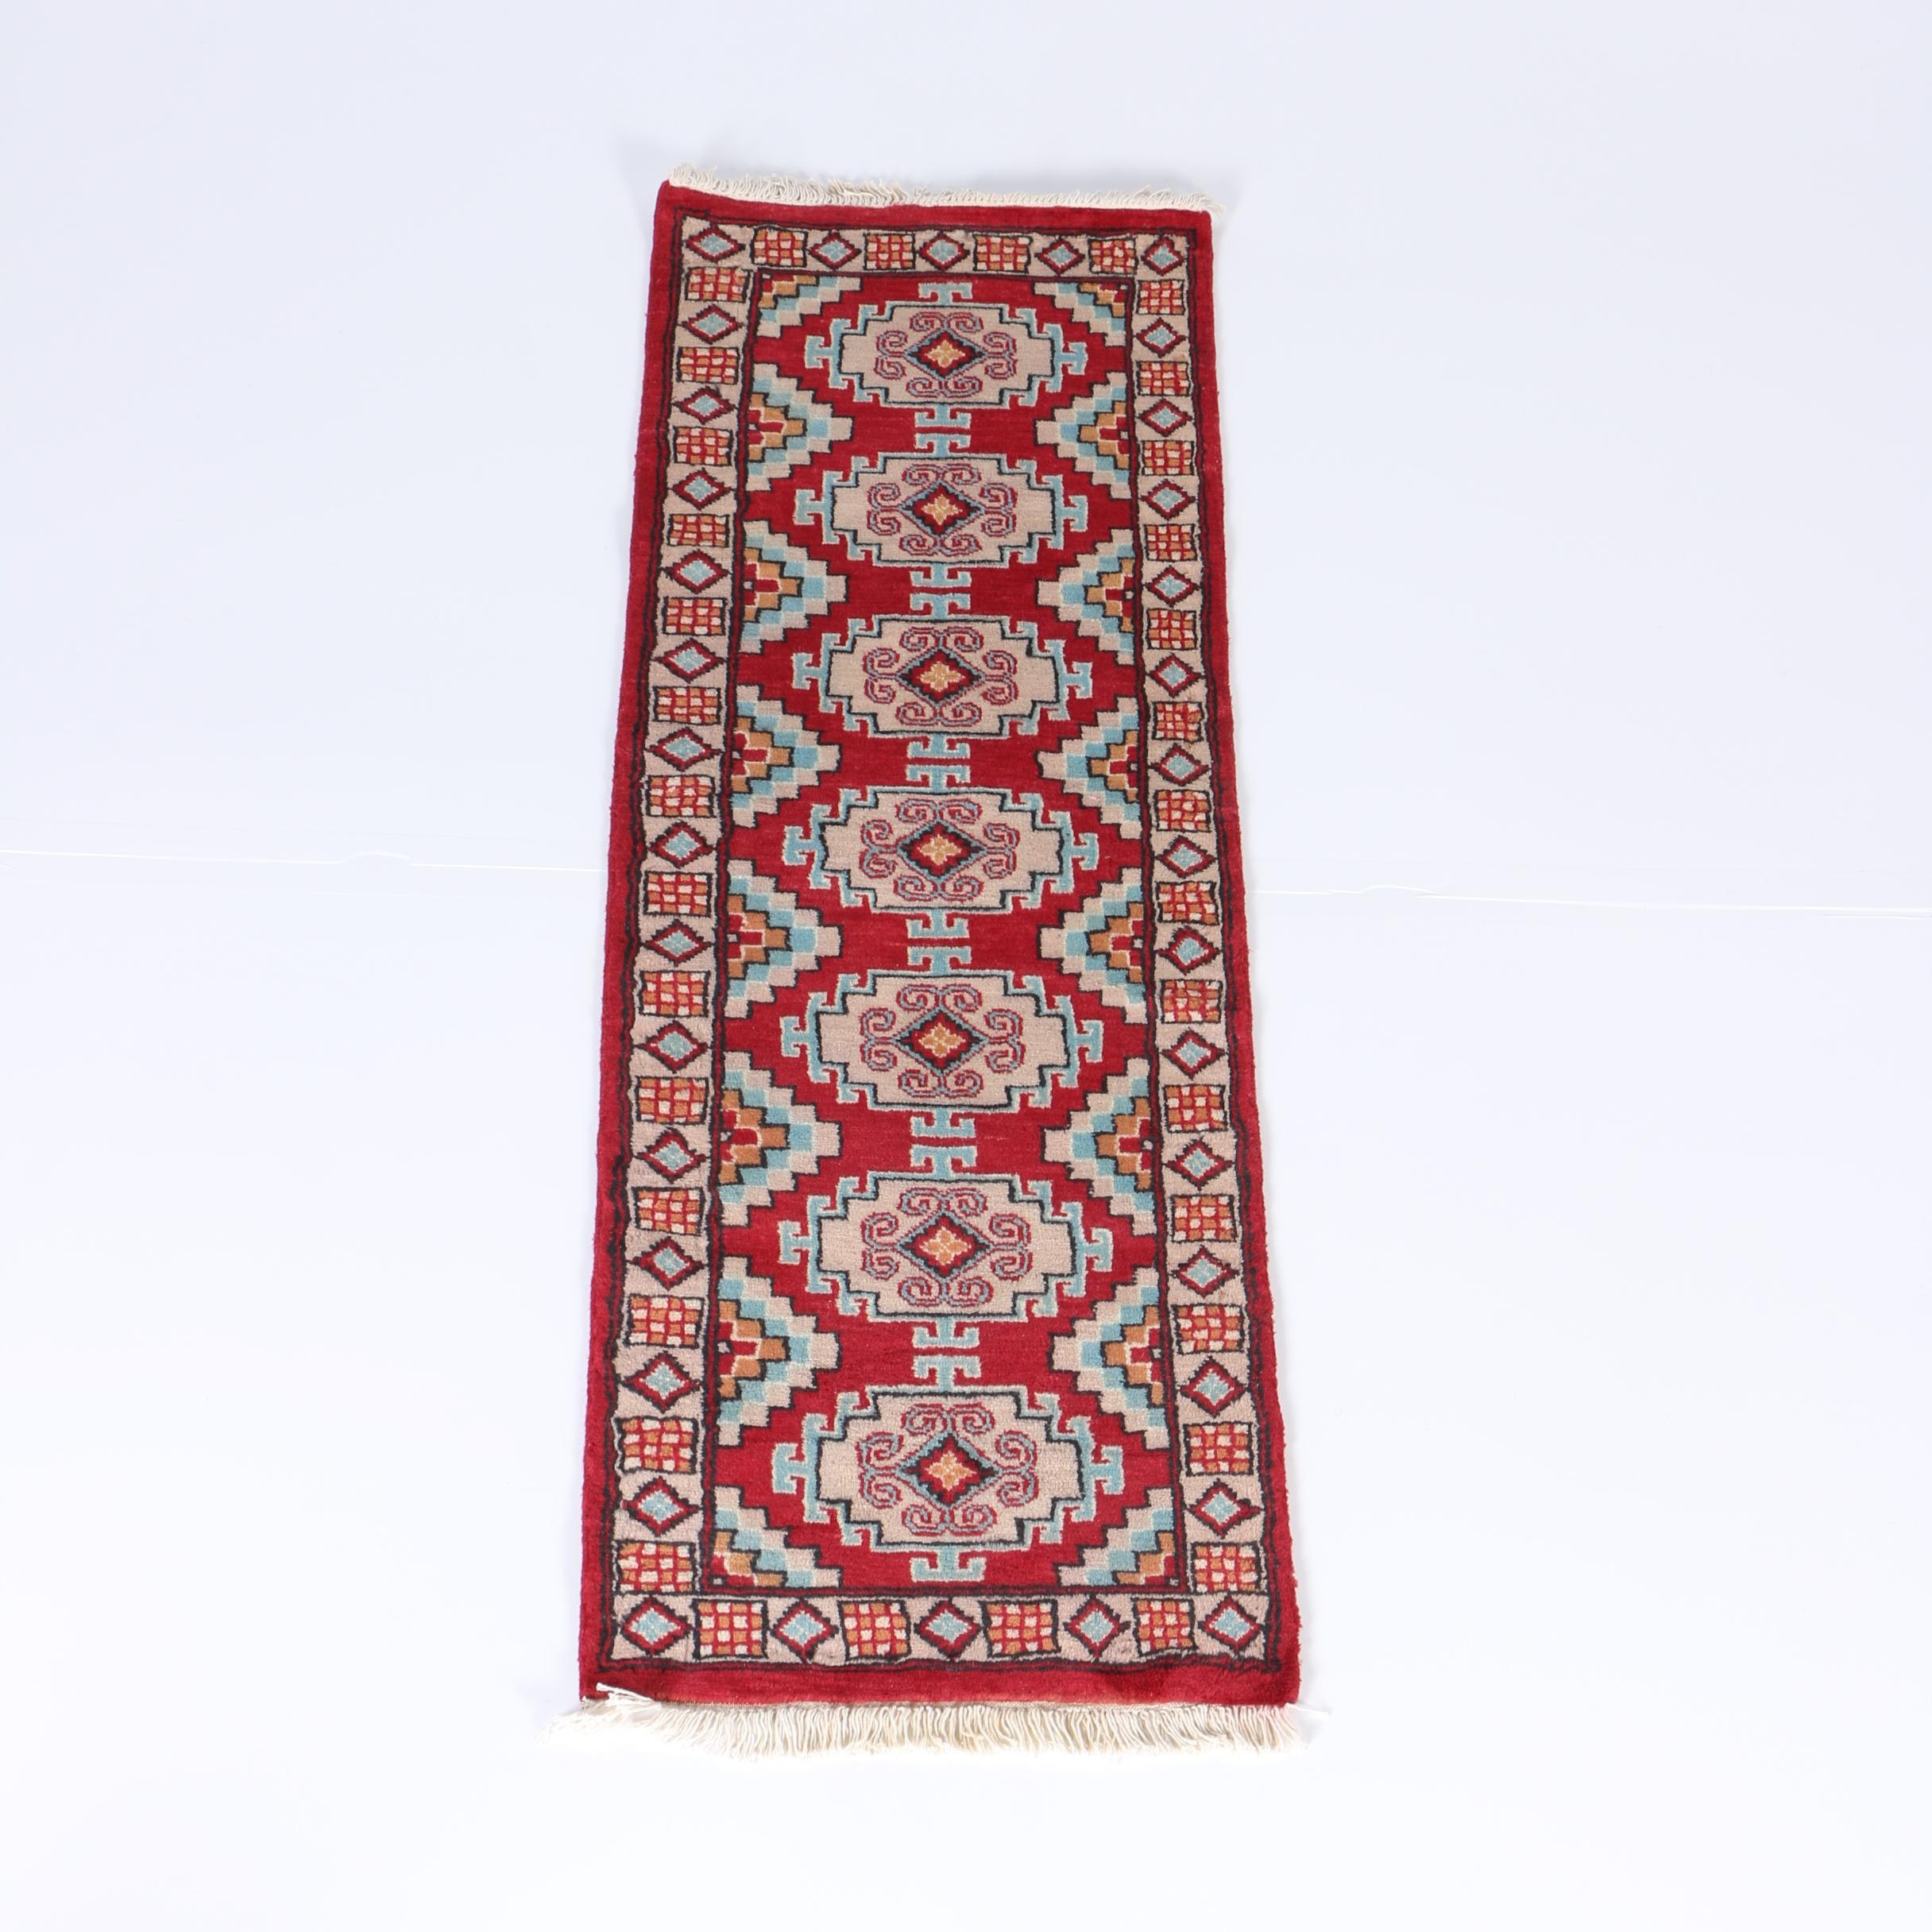 Hand-Knotted Iraqi Kurdish Carpet Runner